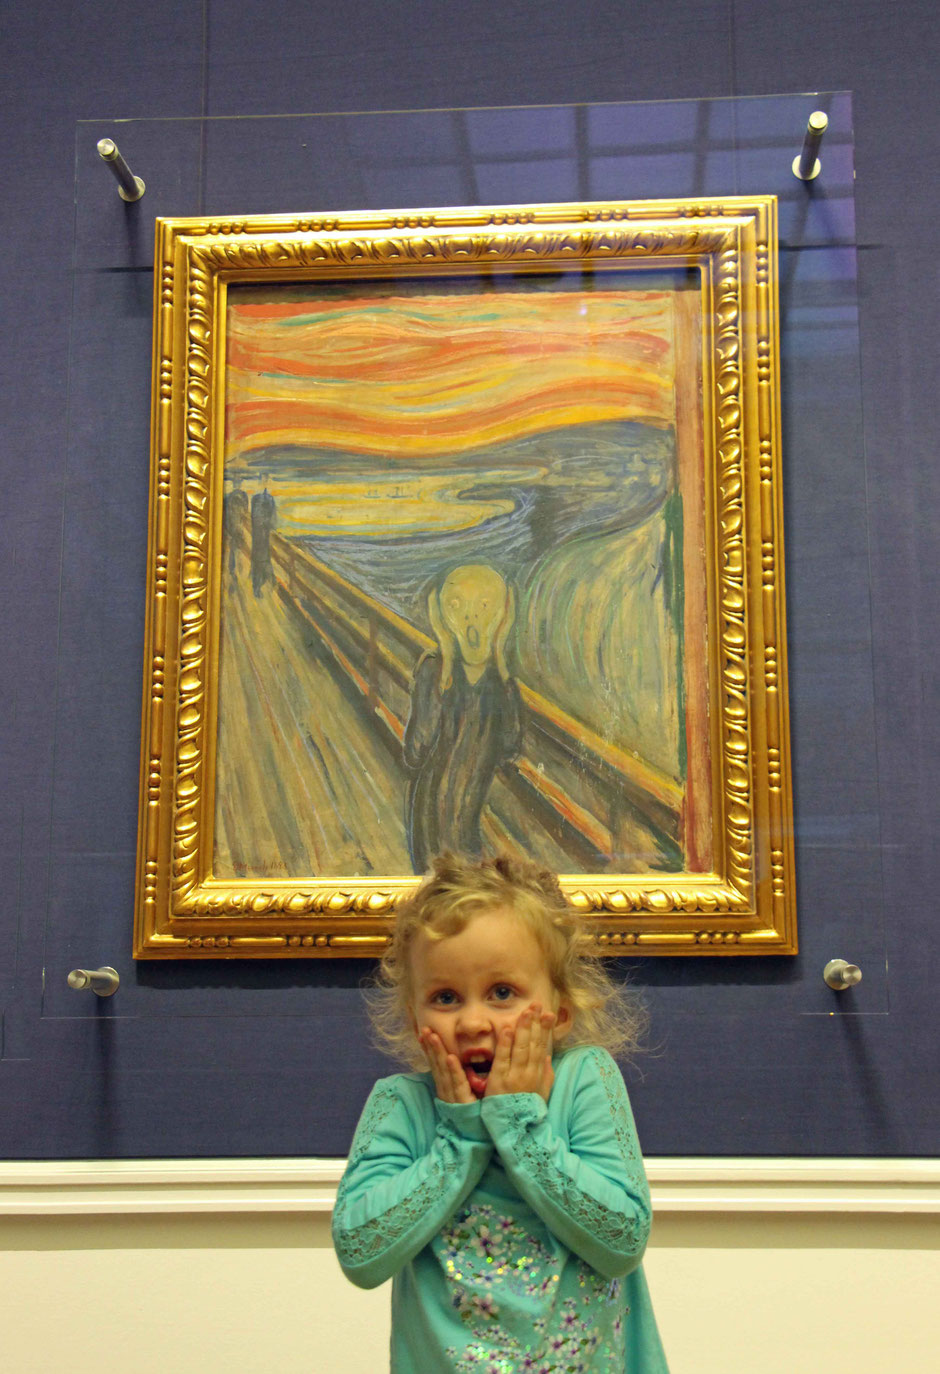 Scream painting at National Gallery Oslo Norway